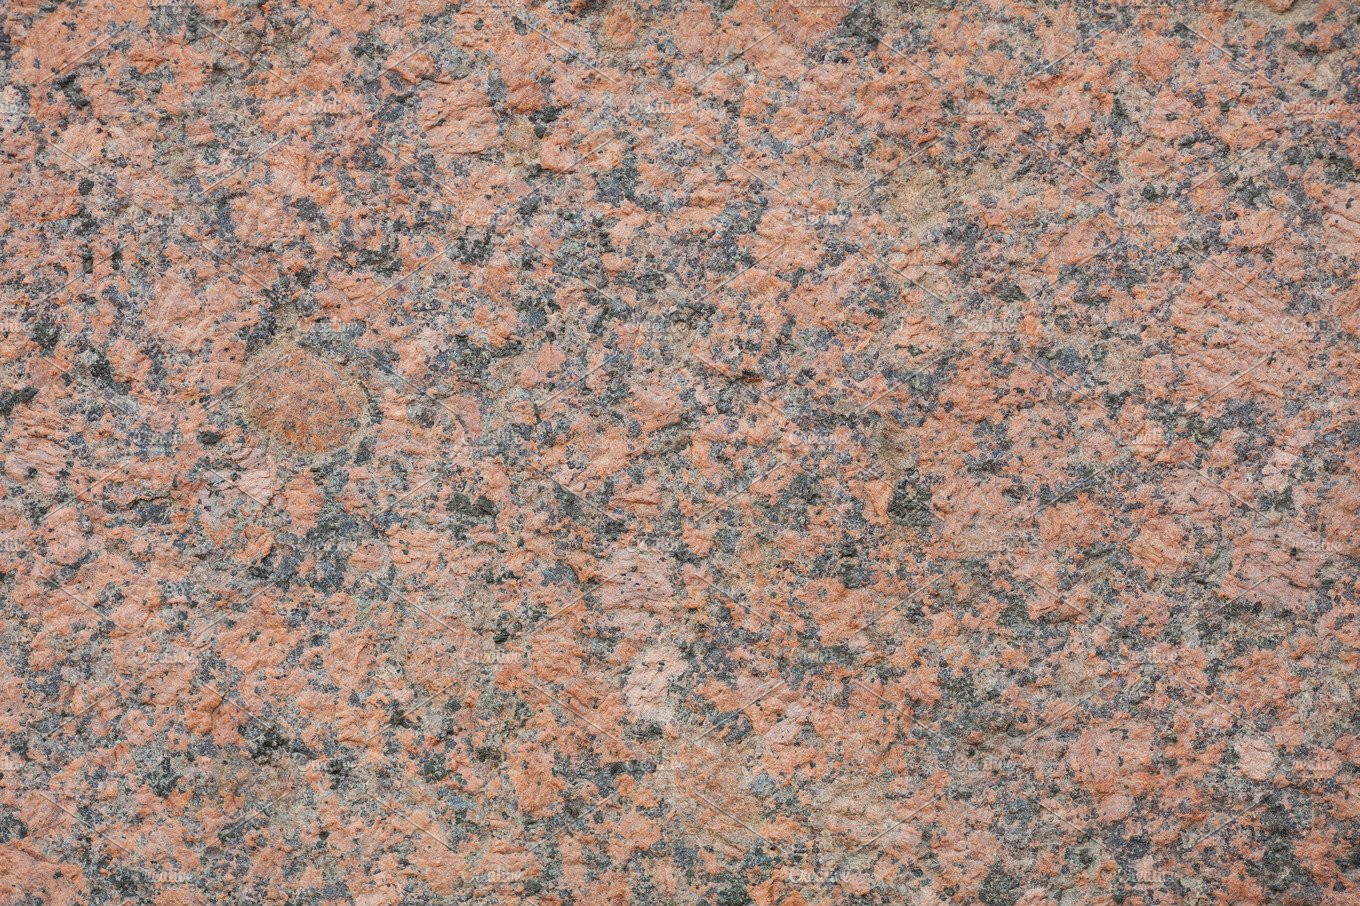 Red Granite Wall As A Texture Background People Photos Creative Market